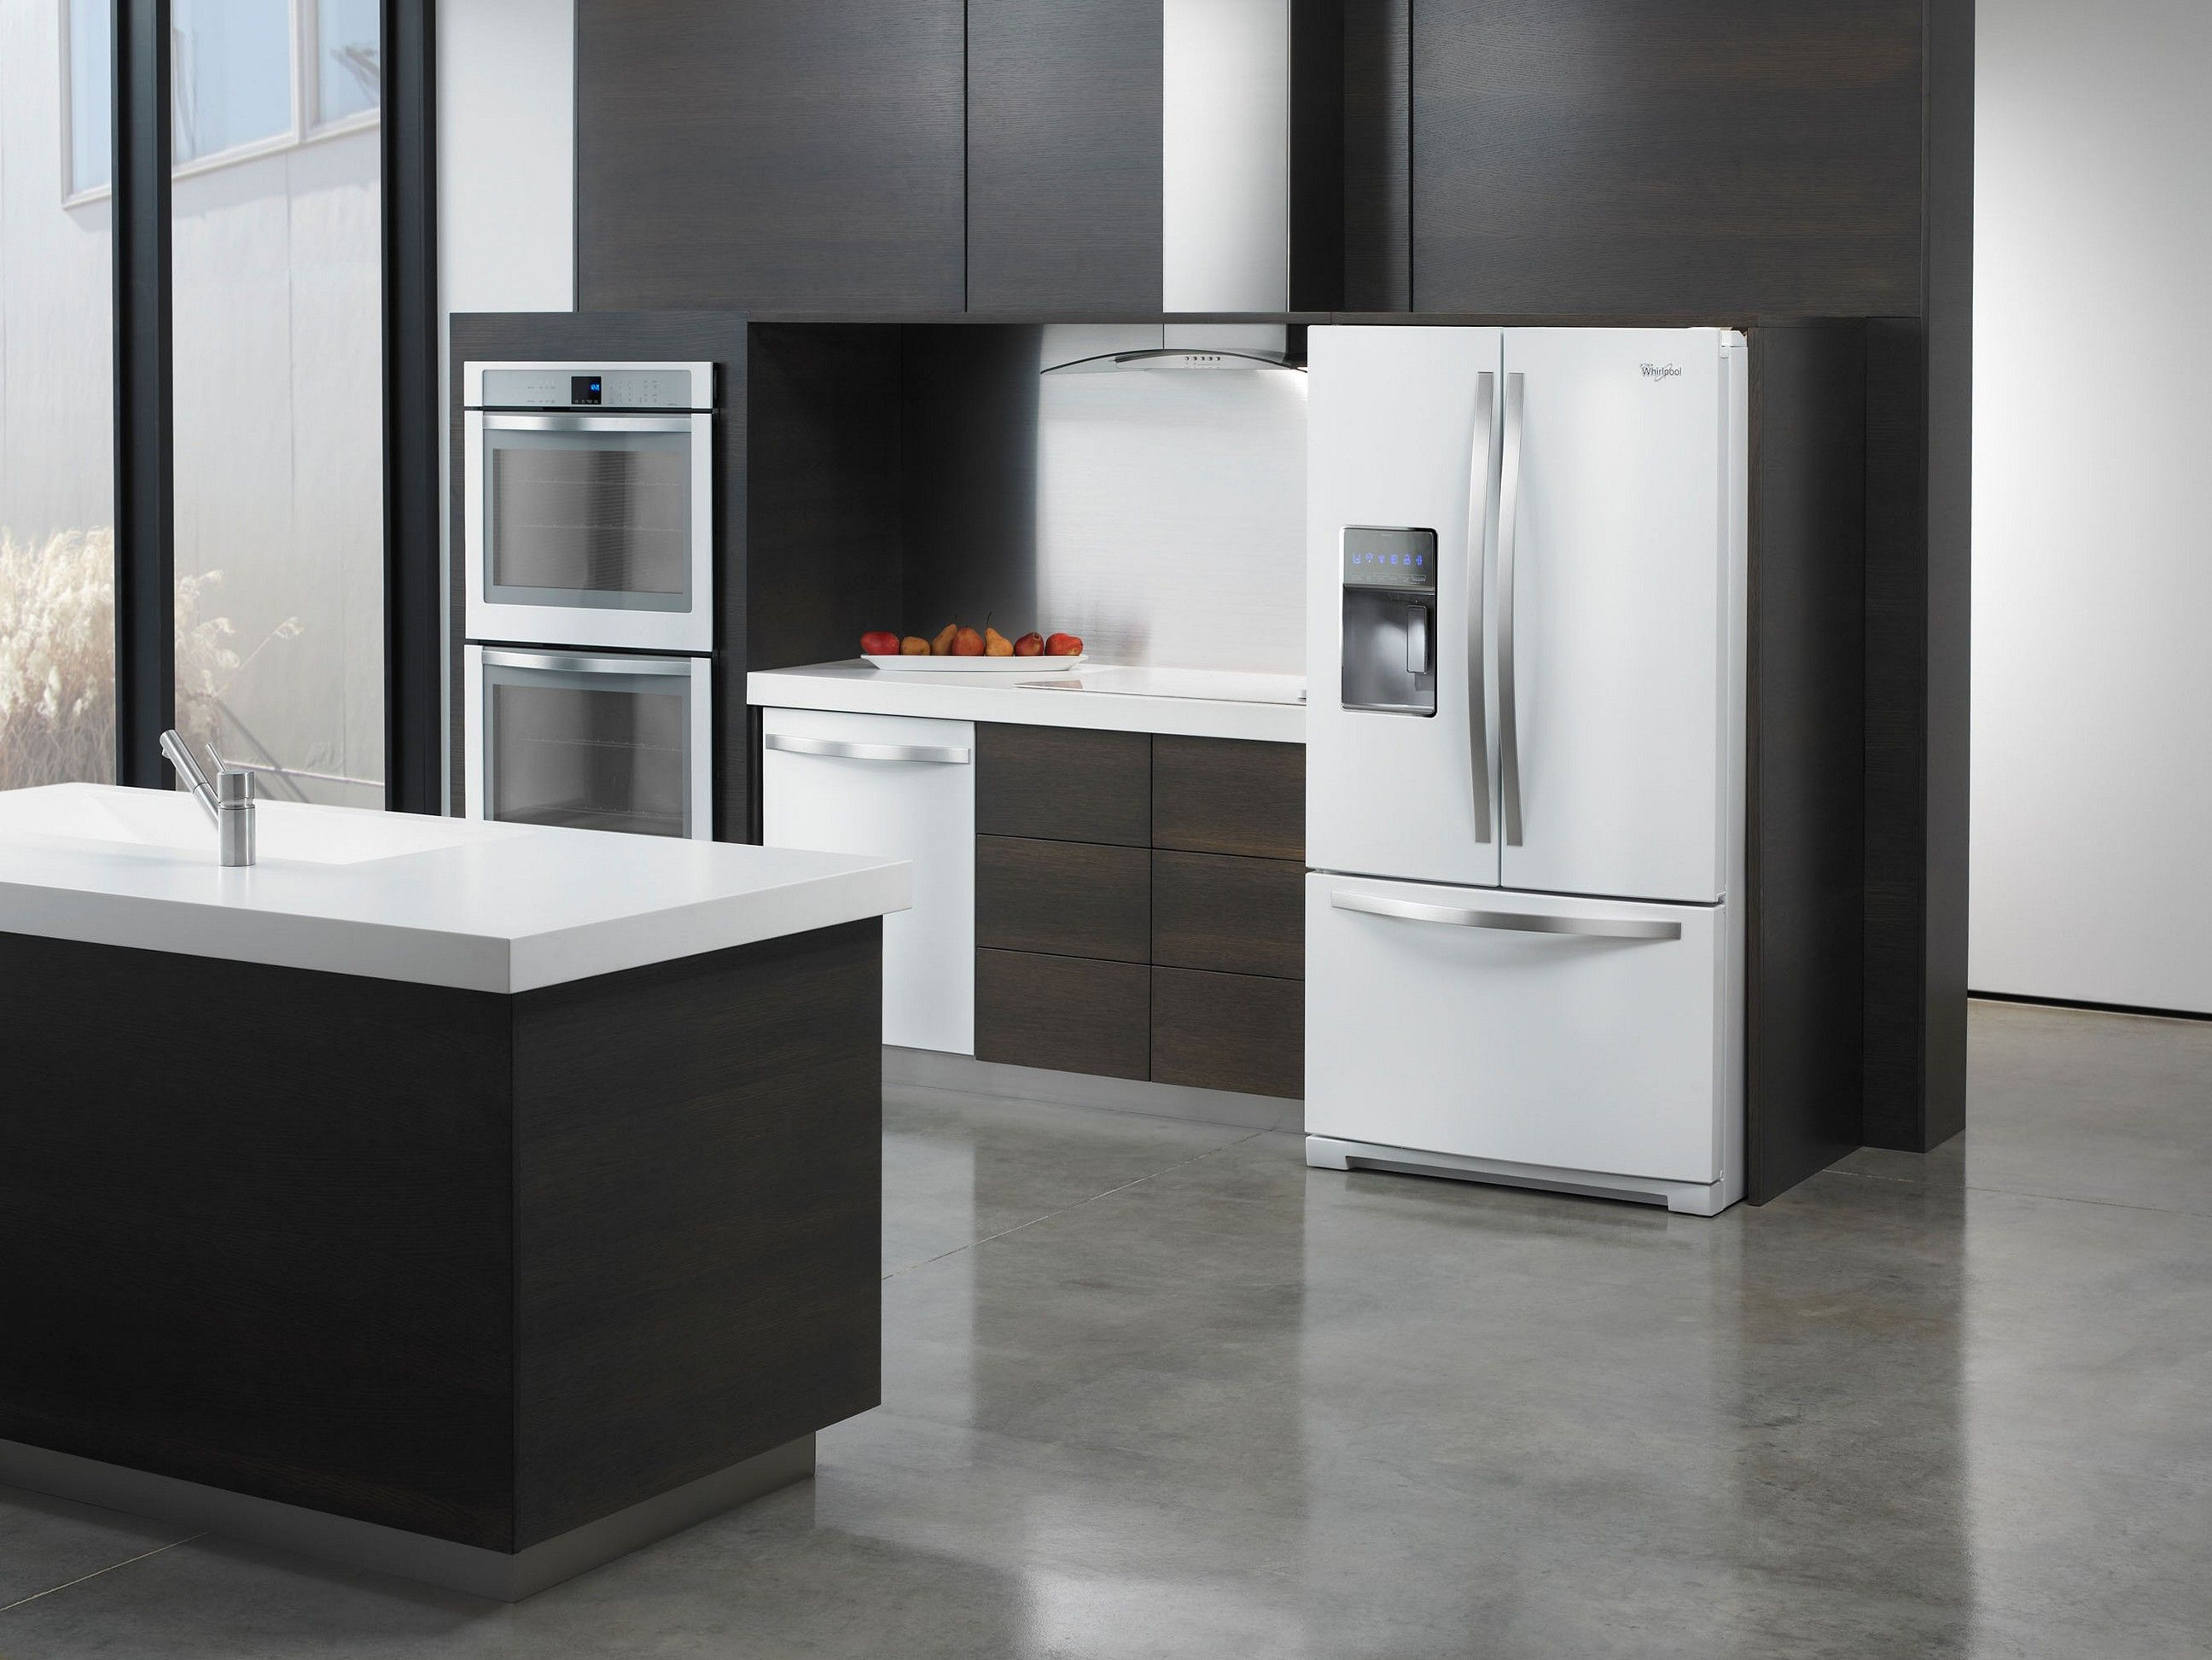 Http://casualhomefurnishings.com/wp Content/uploads/2015/10/Black Kitchen  Cabinets With White Appliances | White Appliances ?